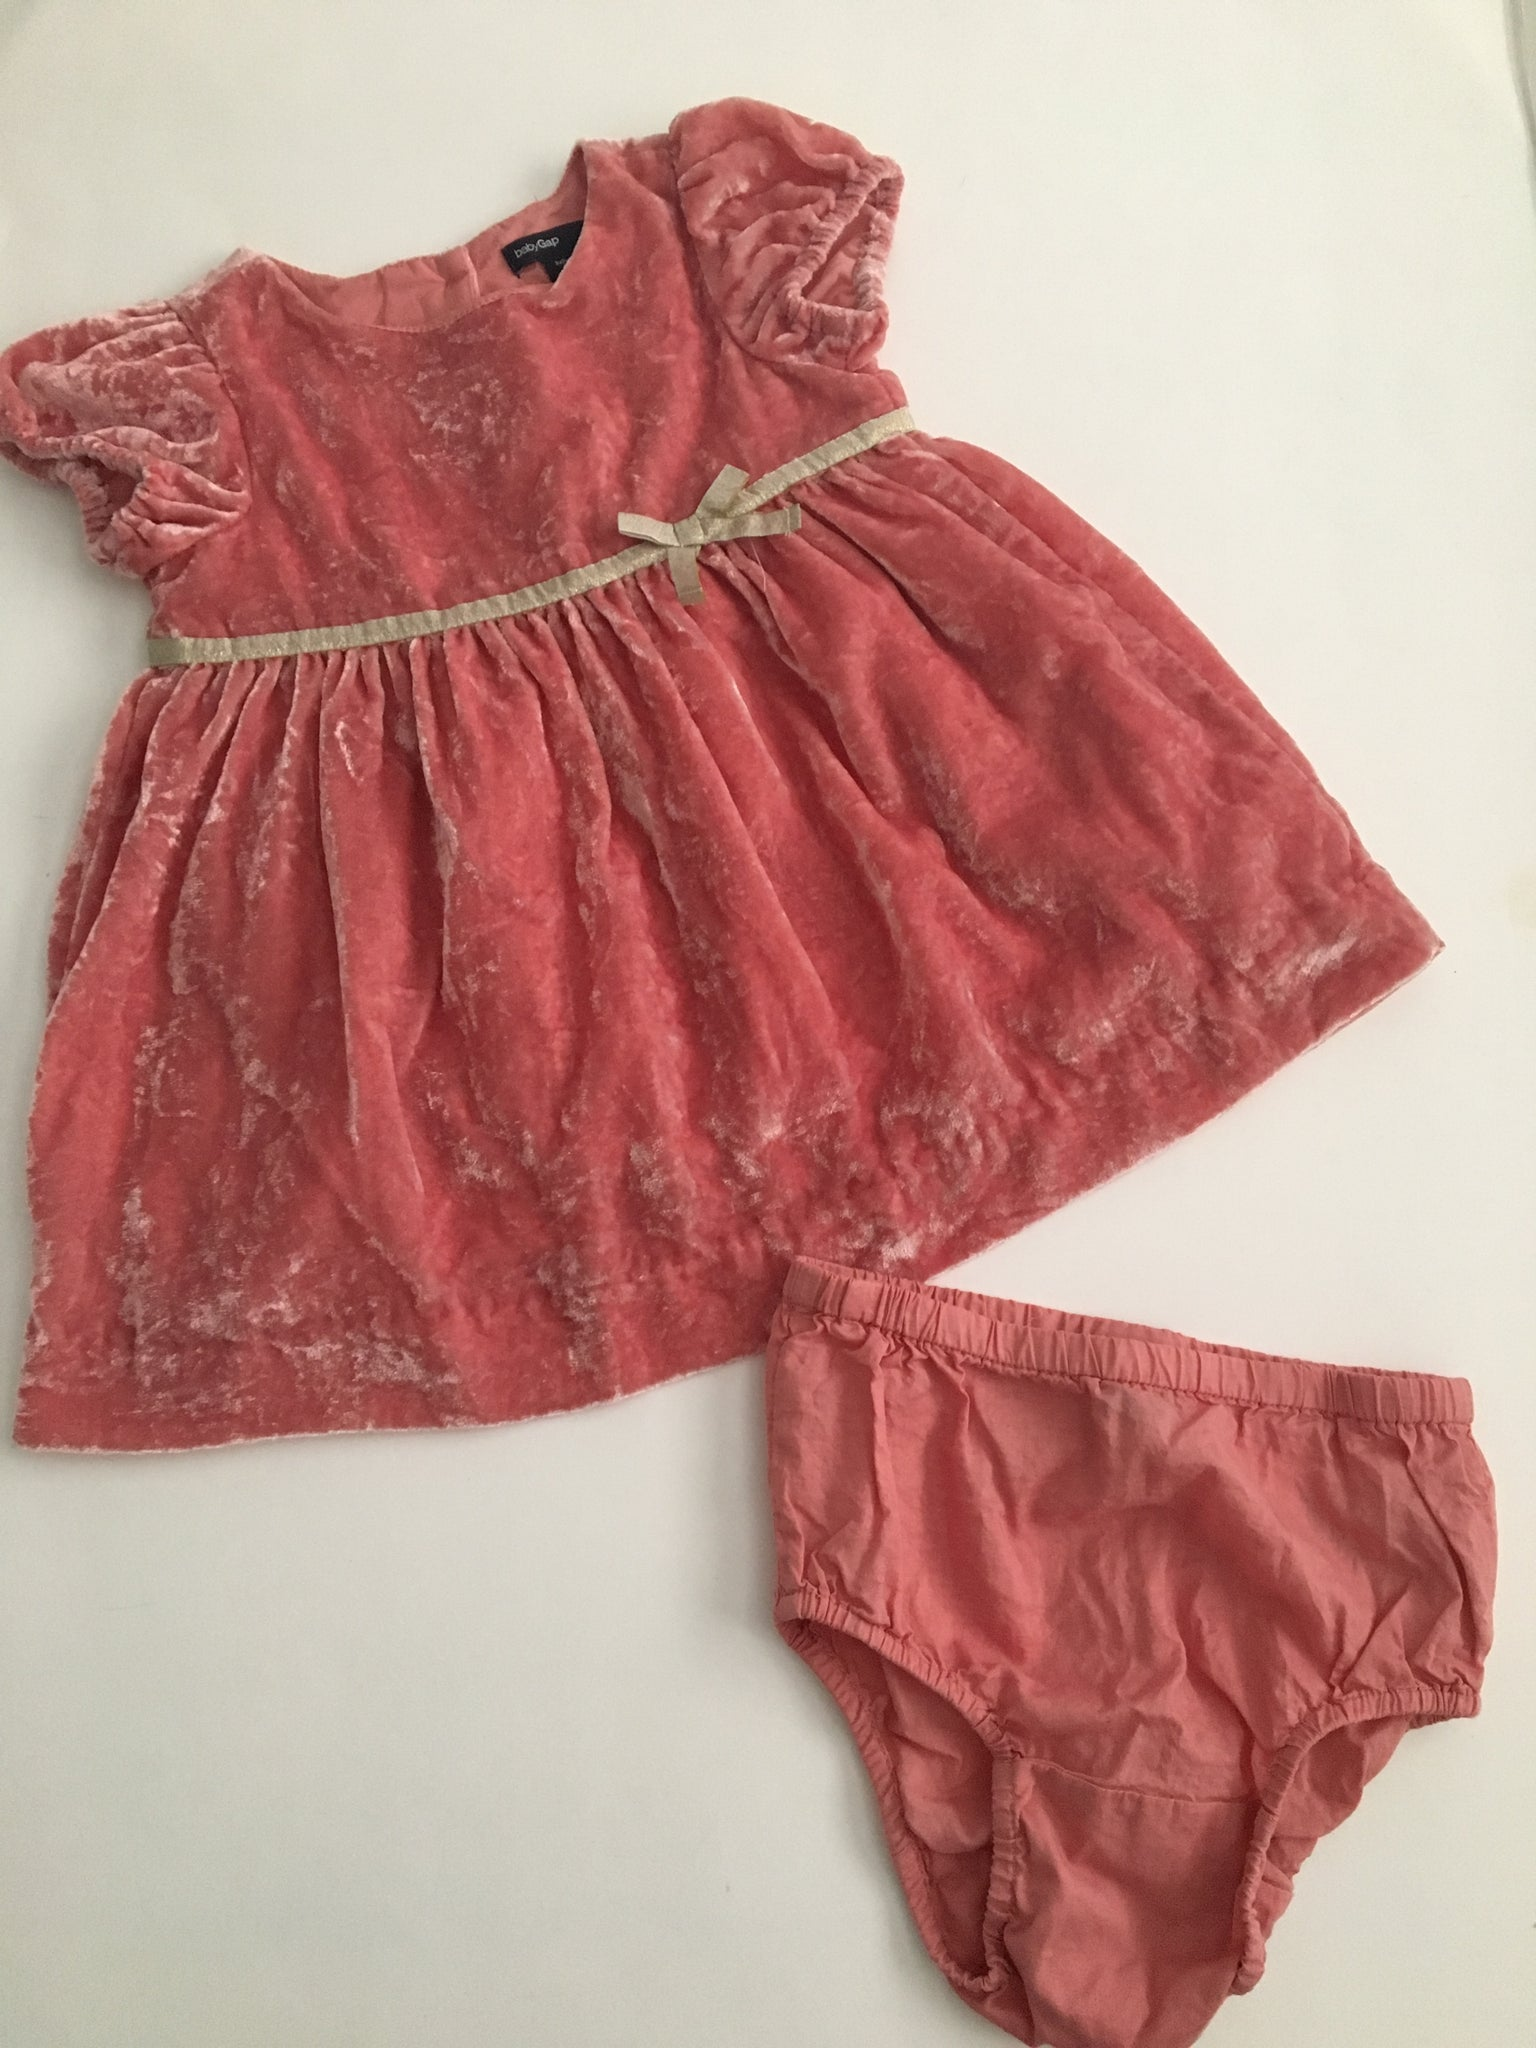 Baby Gap Crushed Velvet Dress | 6-12M